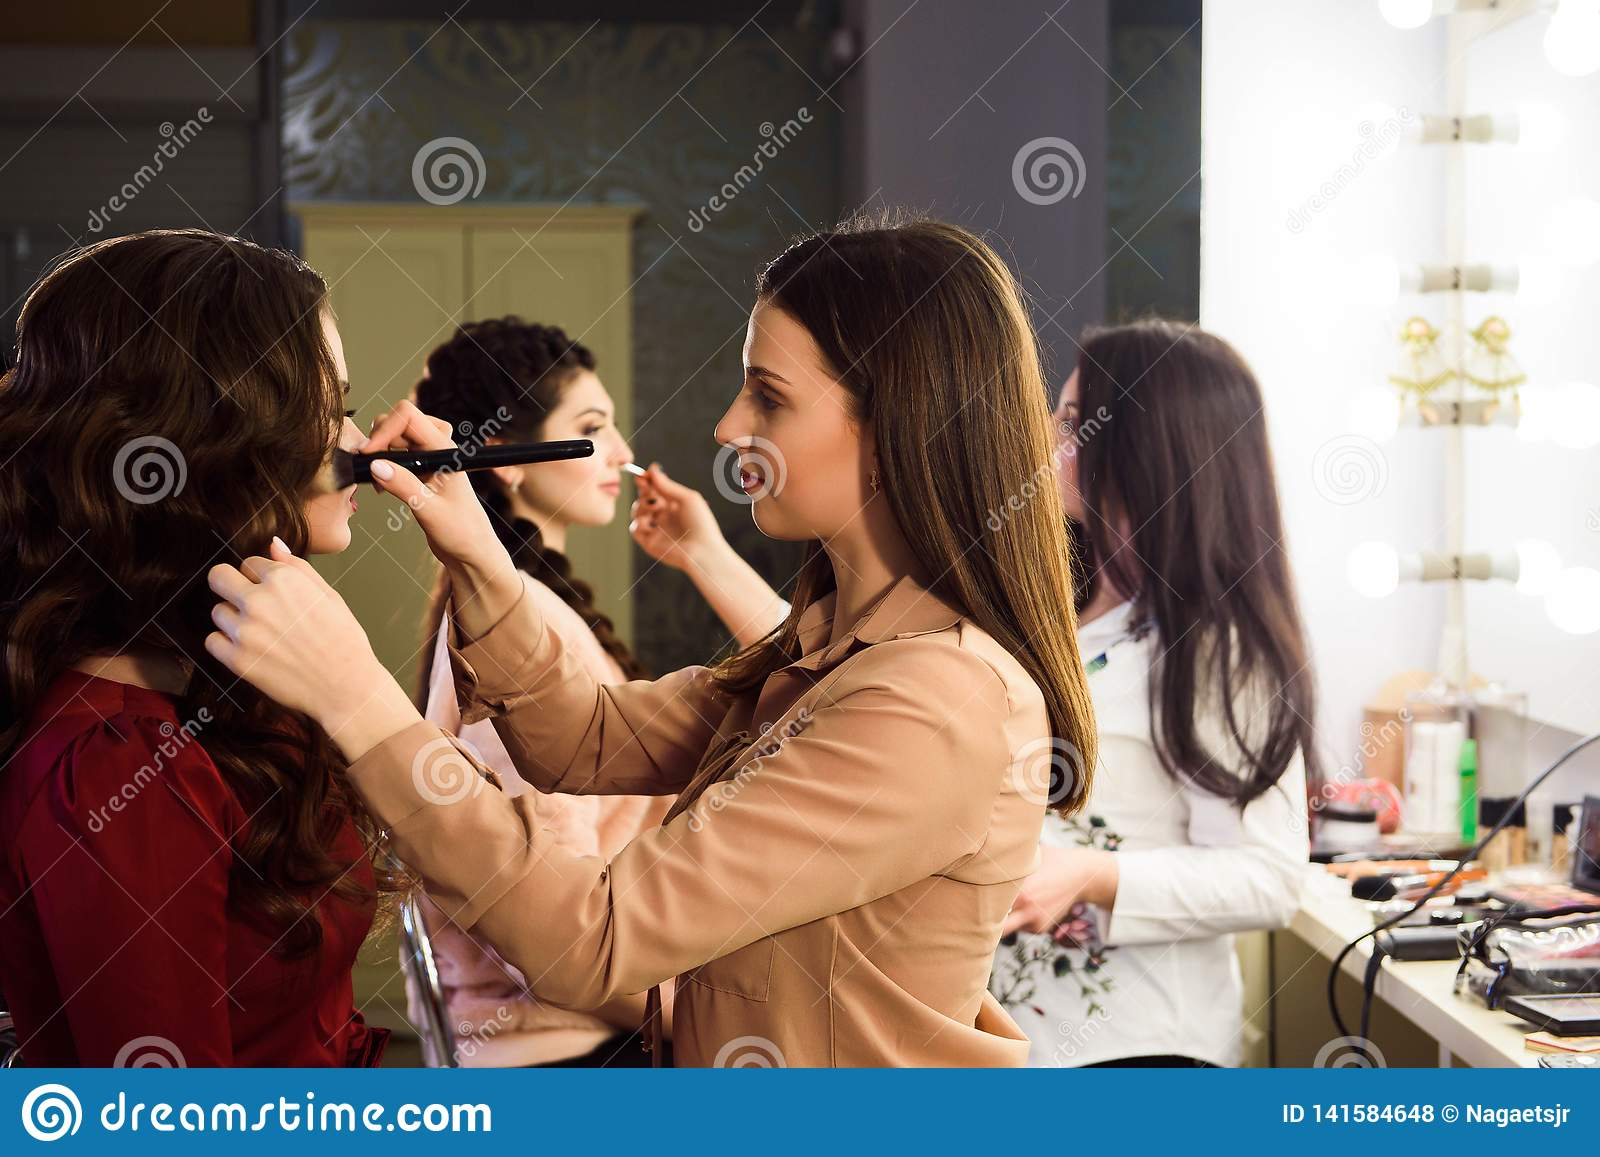 Process of making makeup. Make-up artist working with brush on model face. Portrait of young woman in beauty saloon